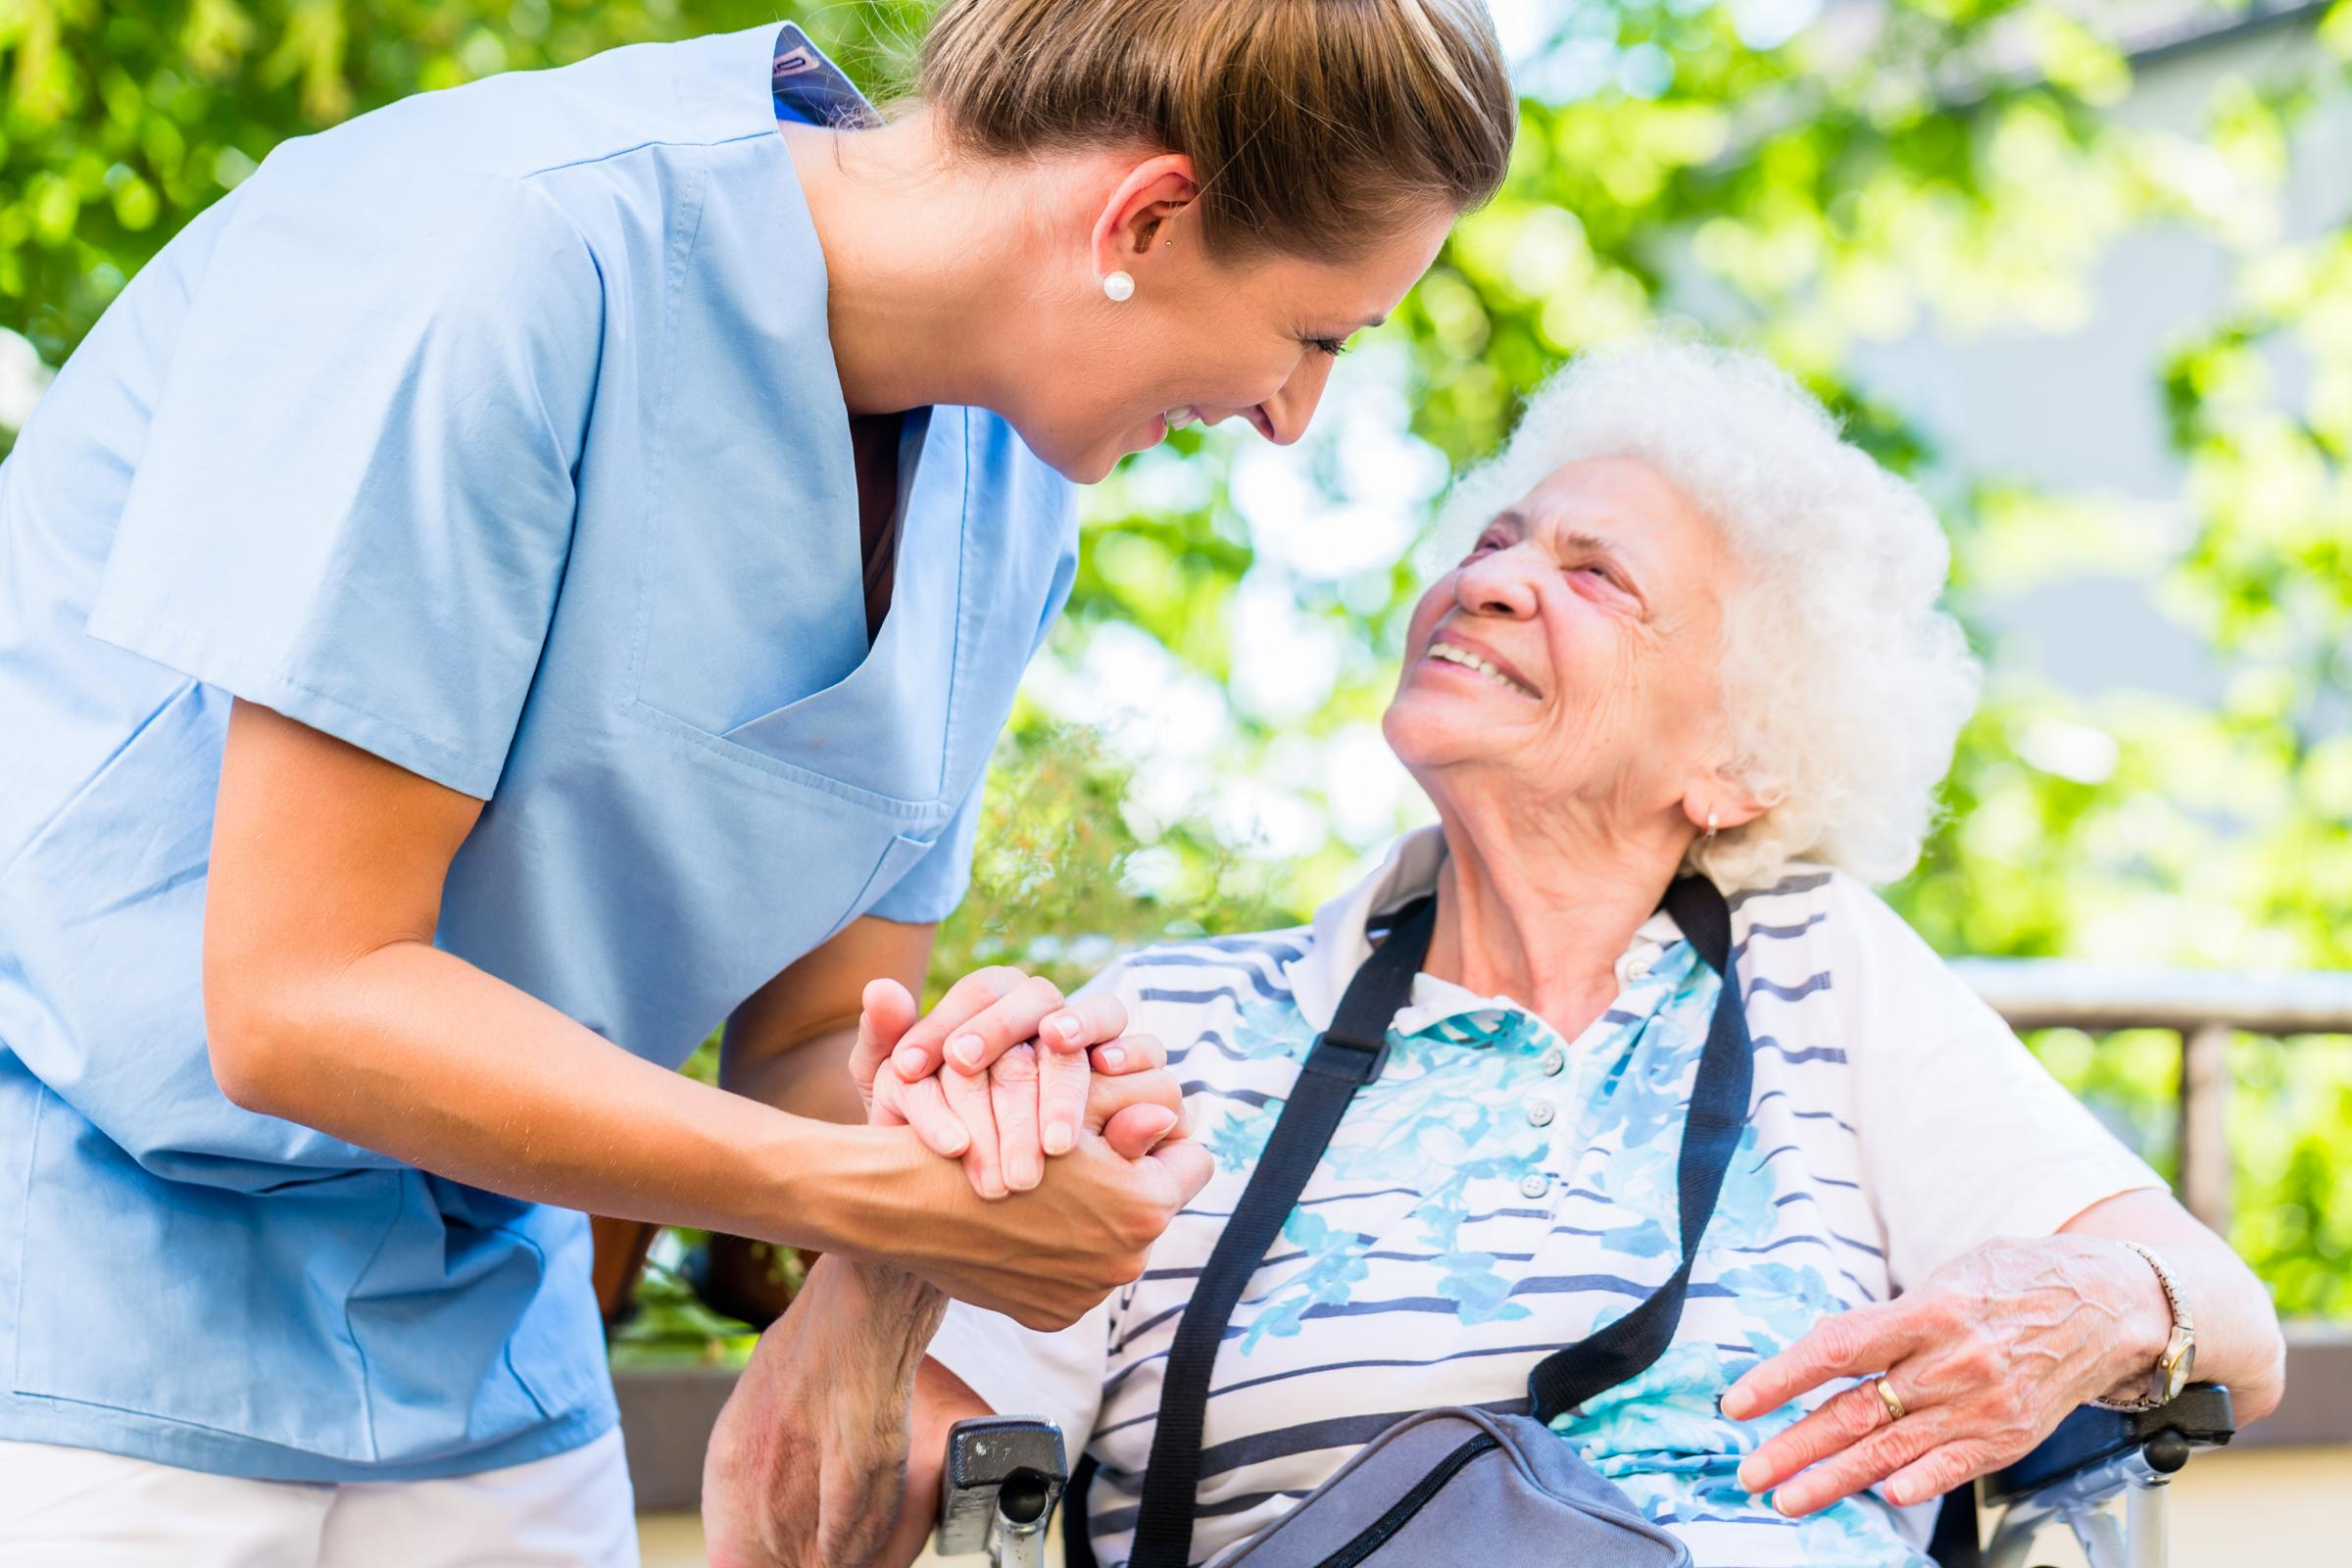 Campaign launched to highlight bad pay in the care industry